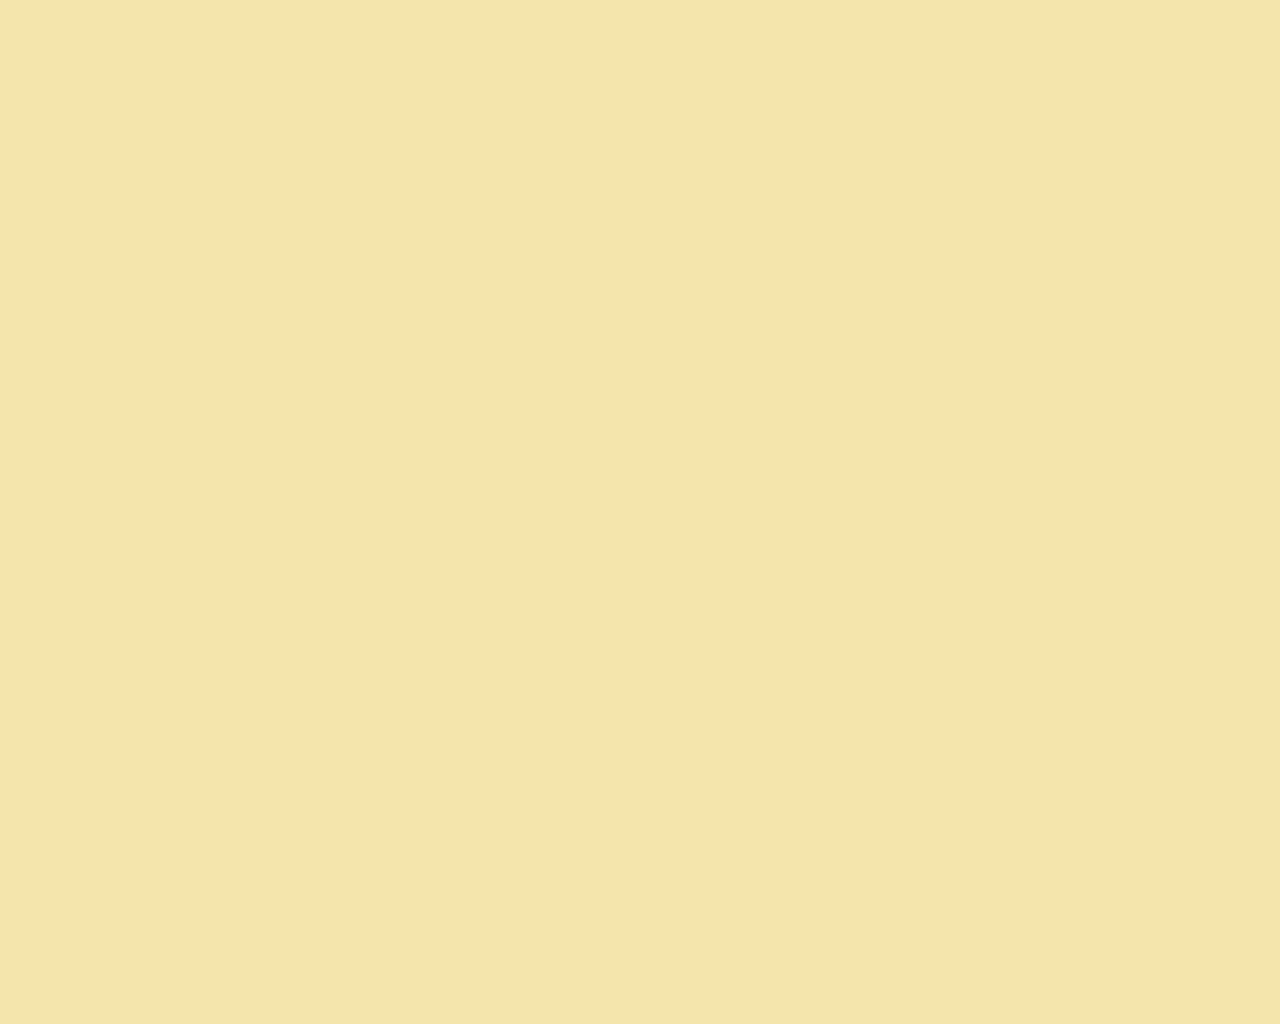 1280x1024 Medium Champagne Solid Color Background